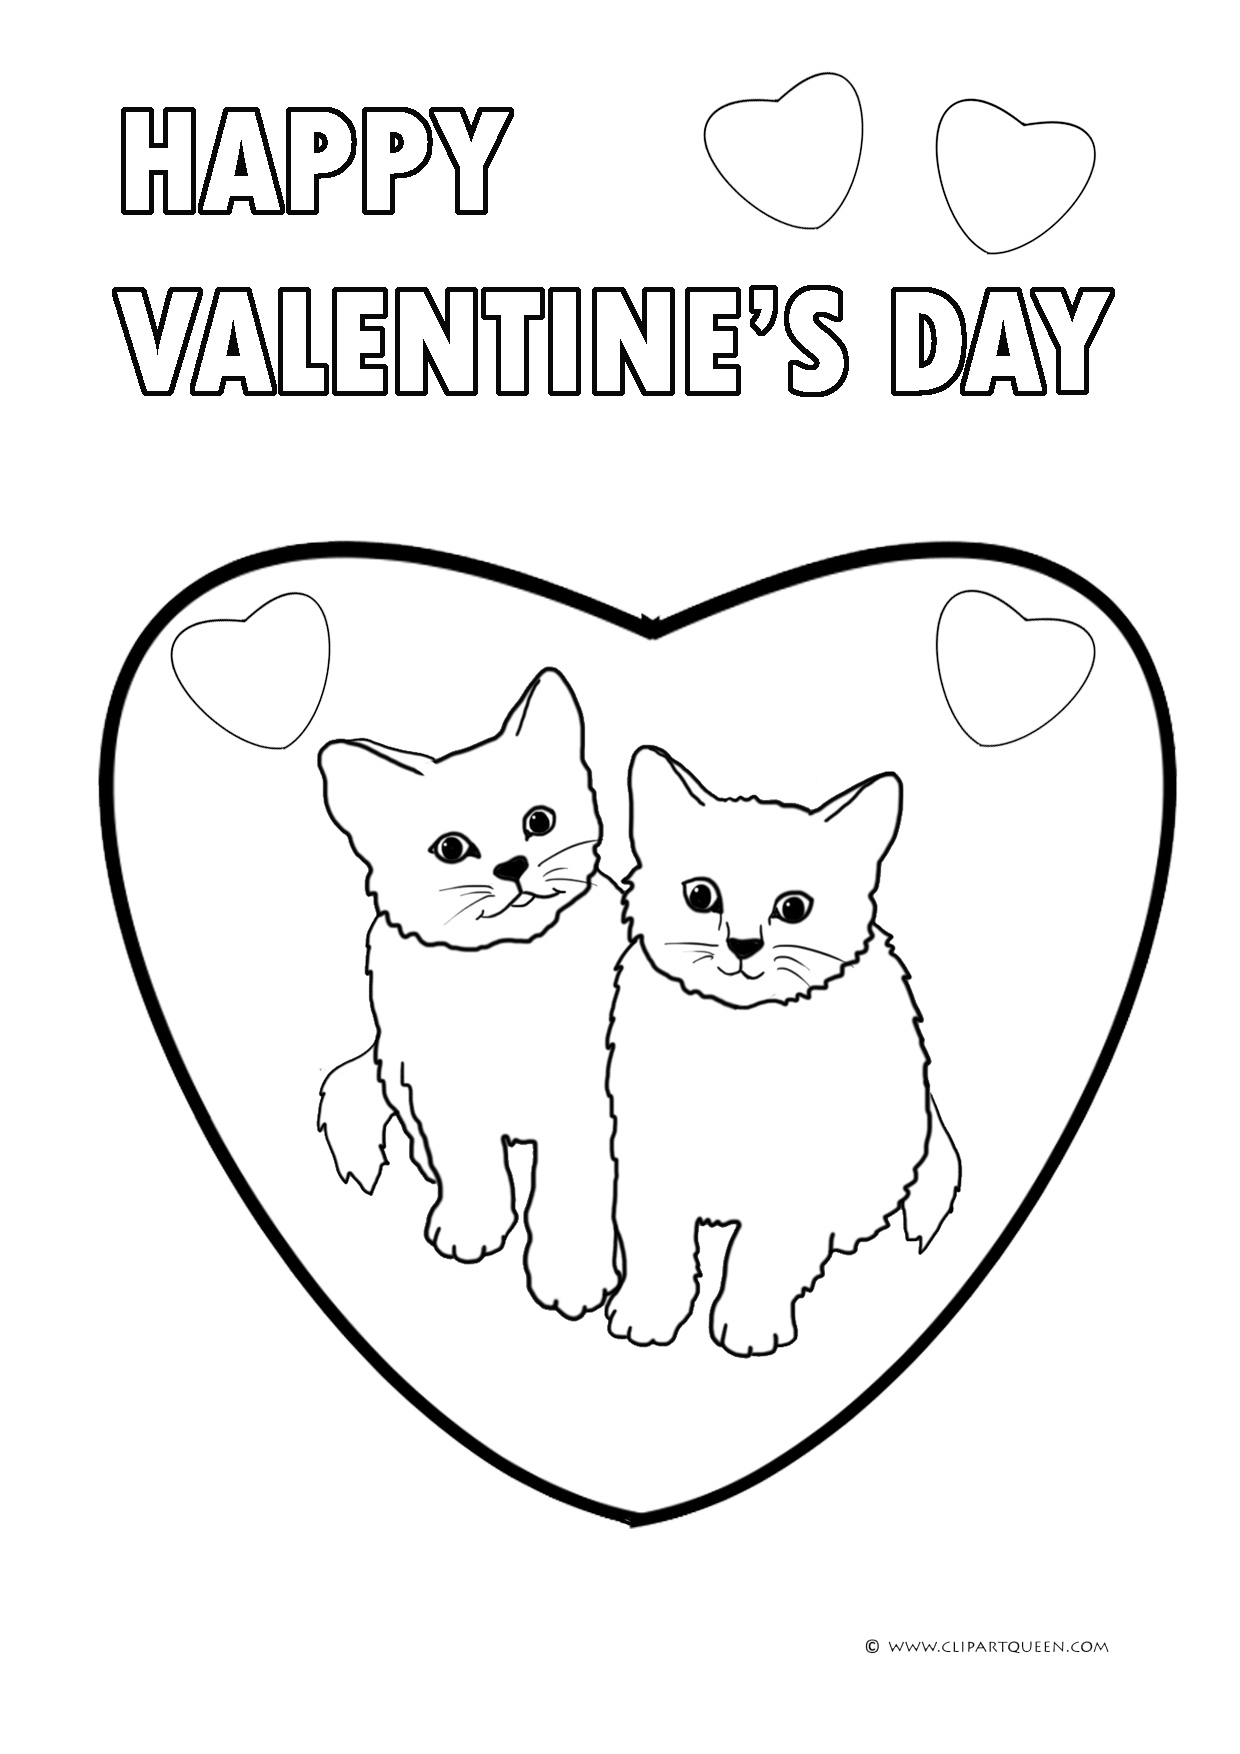 Valentines Day Hearts Coloring Pages 13 Valentines Day Coloring Pages